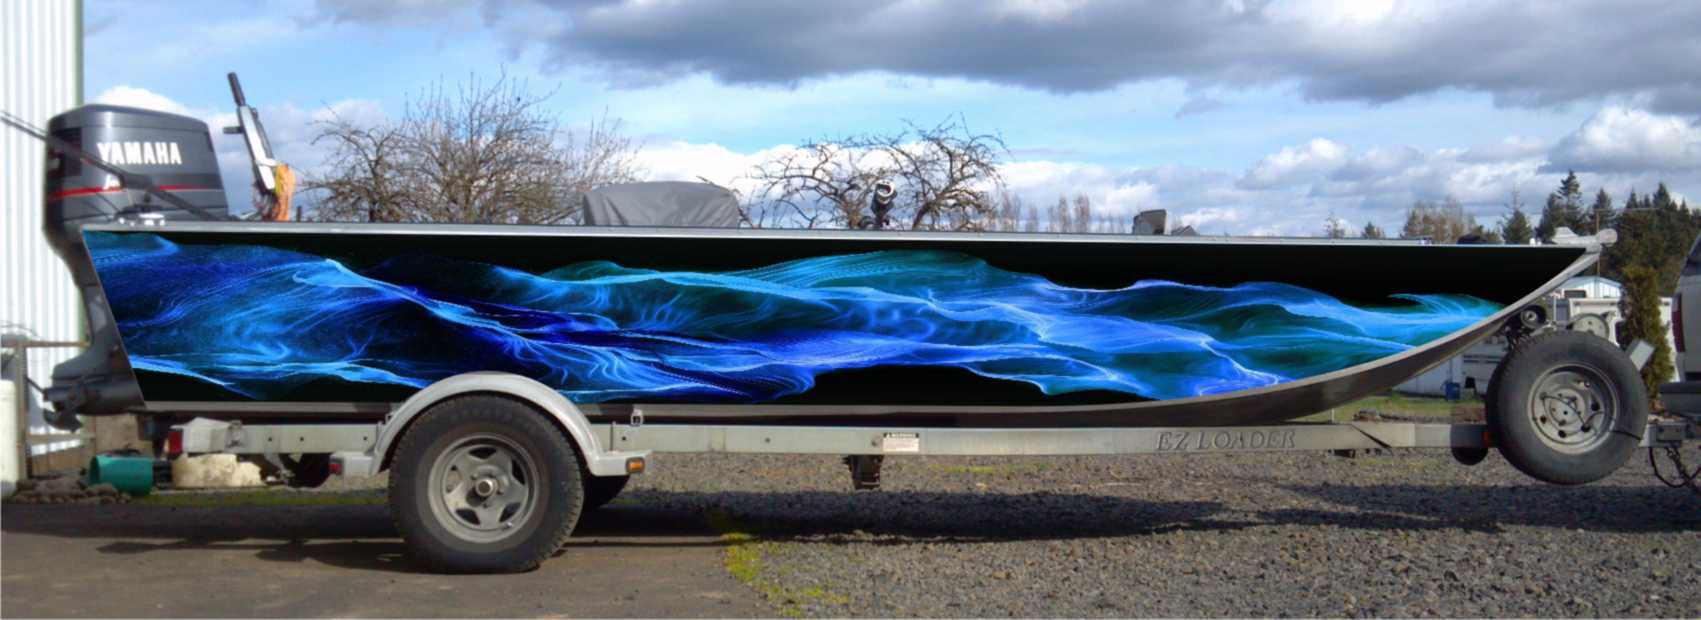 Blue Flame Boat Wrap By Coho Design